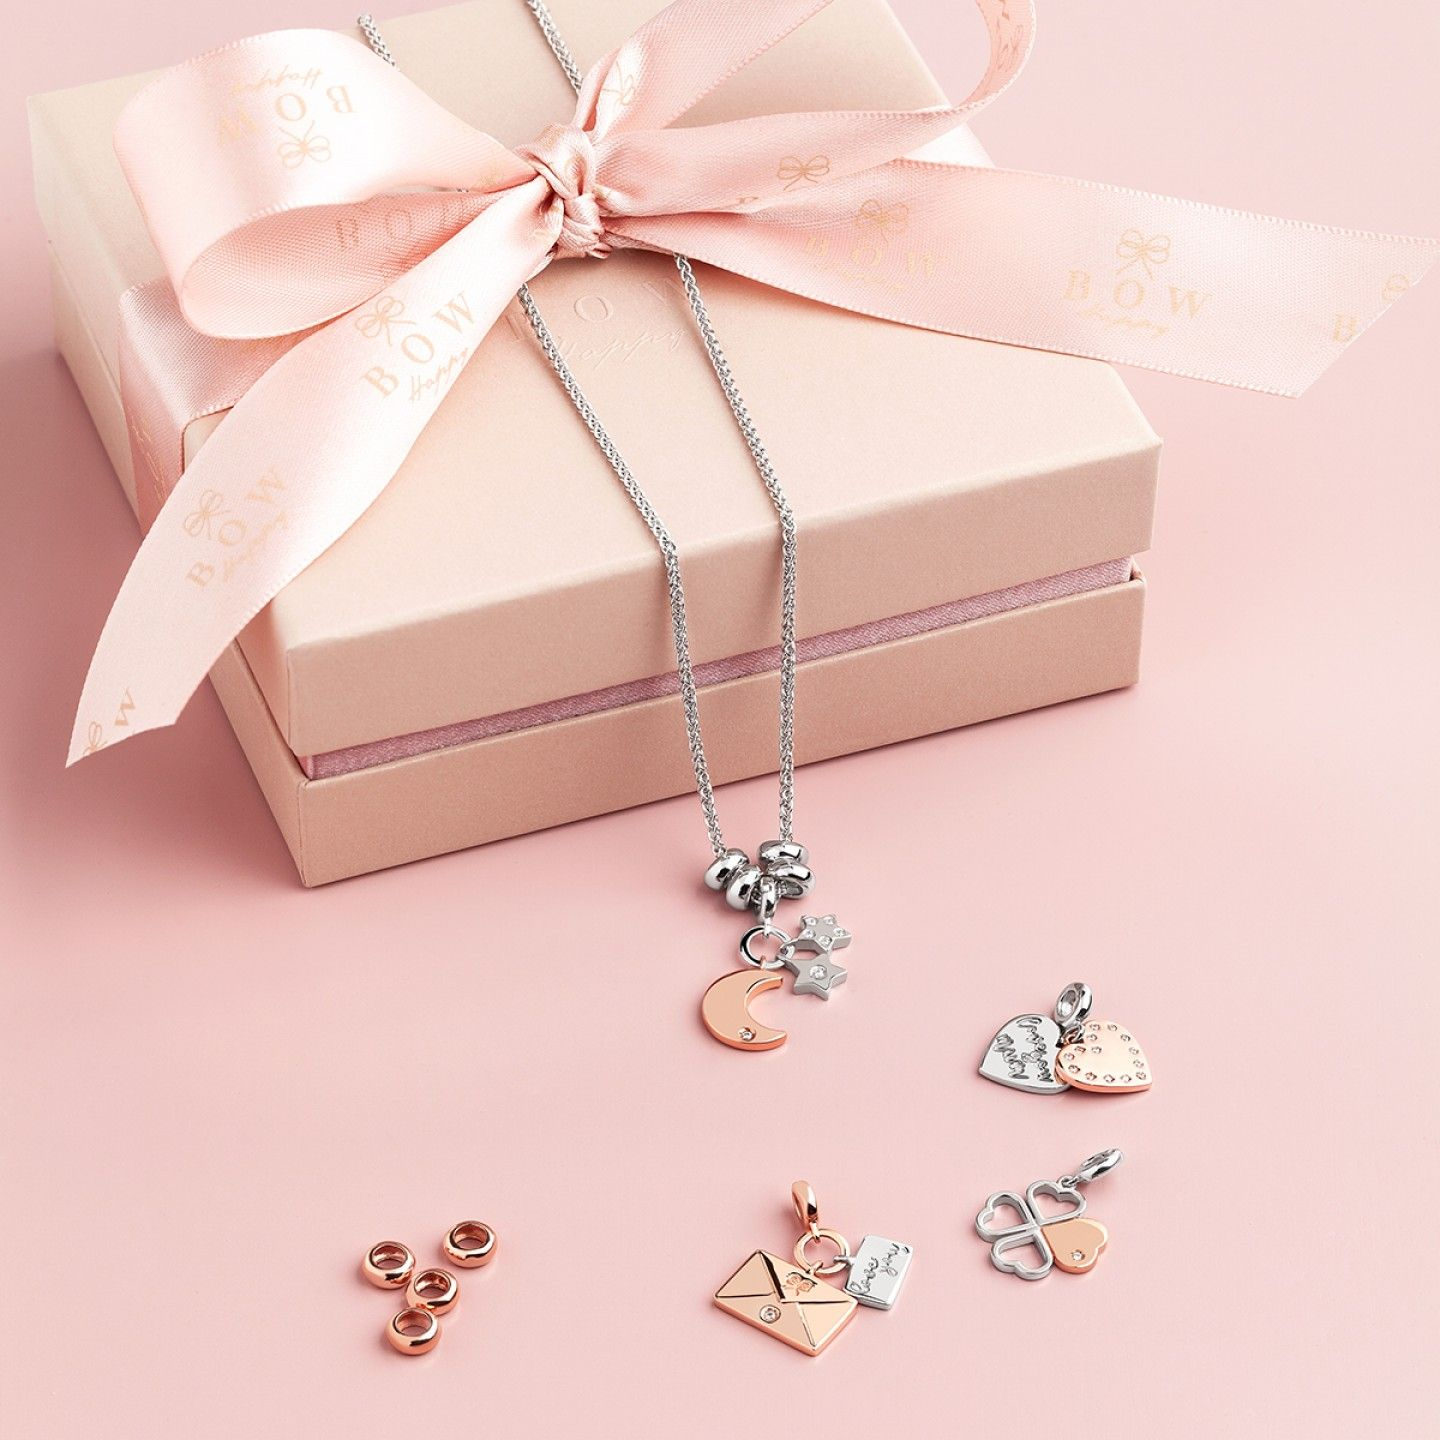 Charm BOW HAPPY Love Stories Mum Hearts